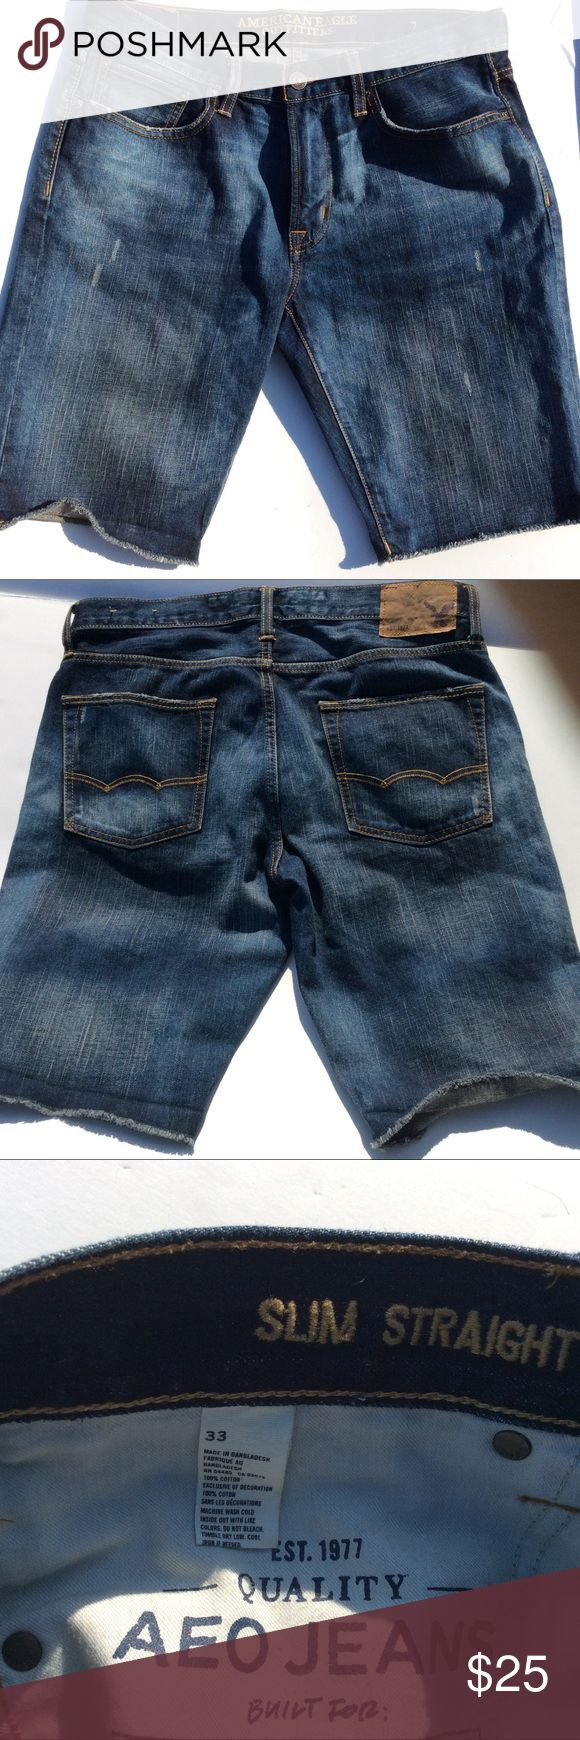 AEO denim slim straight shorts AEO denim slim straight shorts. Slightly distressed style with fray ends. In perfect condition. American Eagle Outfitters Shorts Jean Shorts